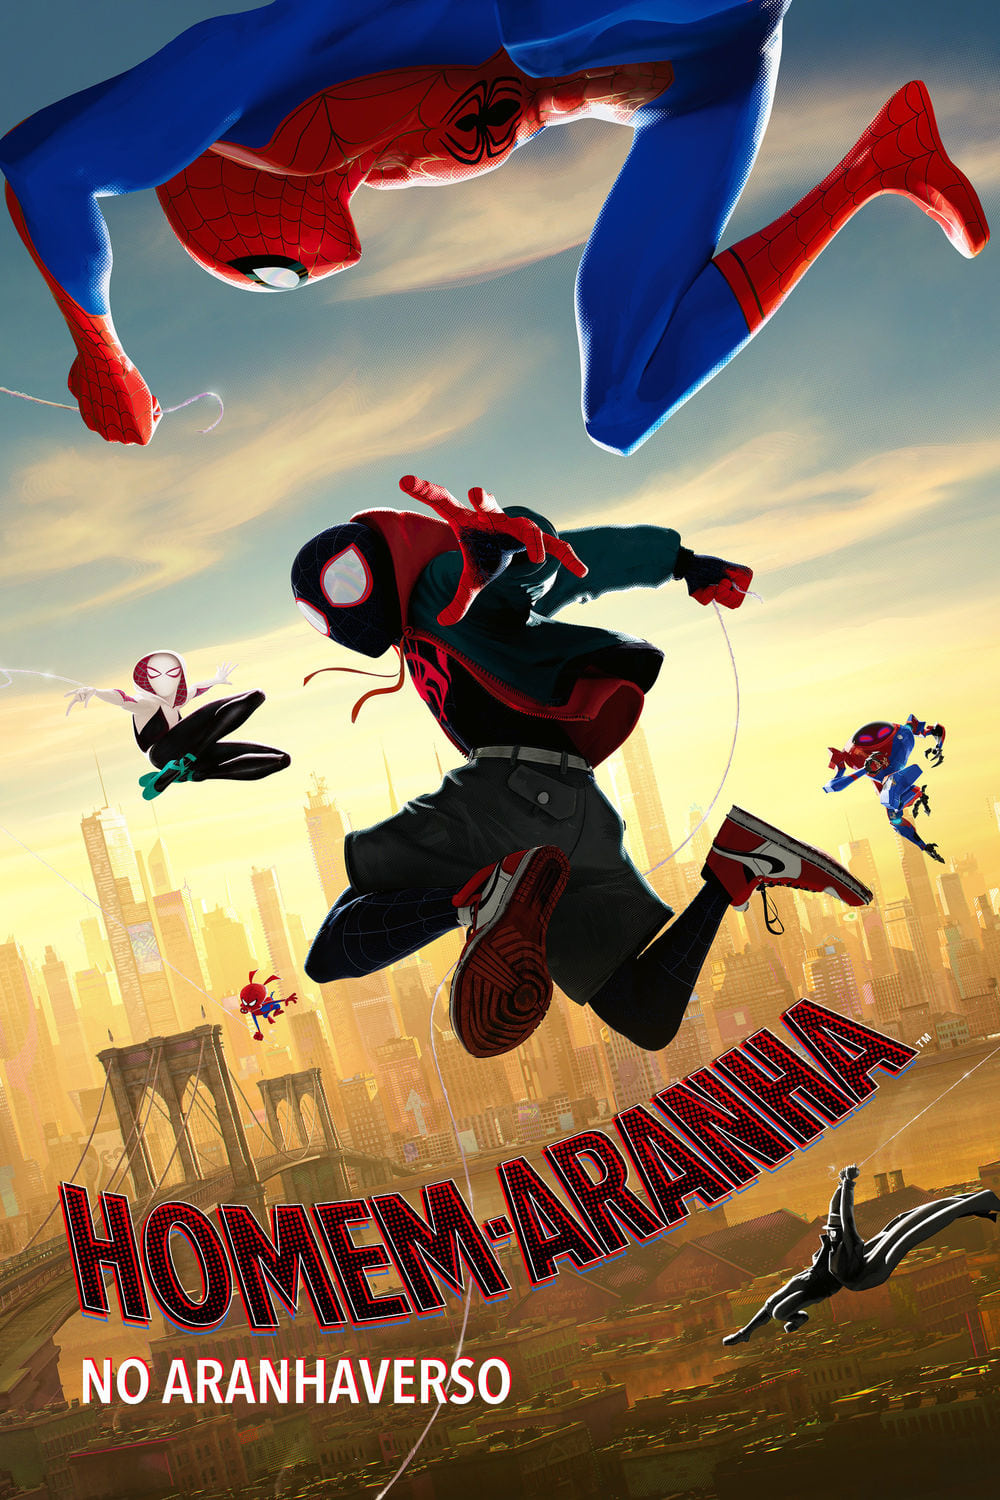 Homem-Aranha no Aranhaverso (2019) Torrent - WEB-DL 720p e 1080p Dublado e Legendado Download